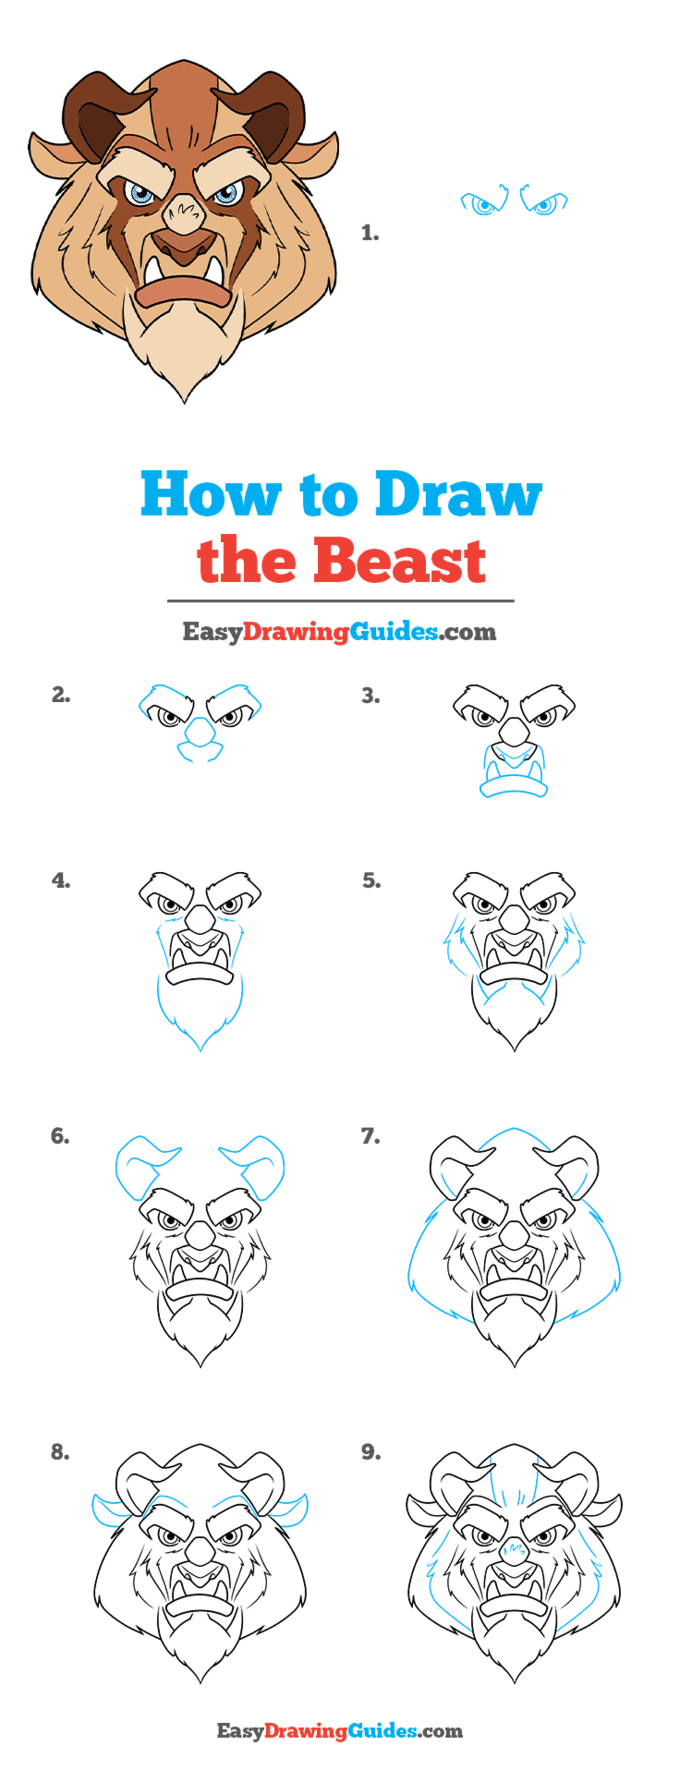 How to Draw the Beast from Beauty and the Beast Step by Step Tutorial Image